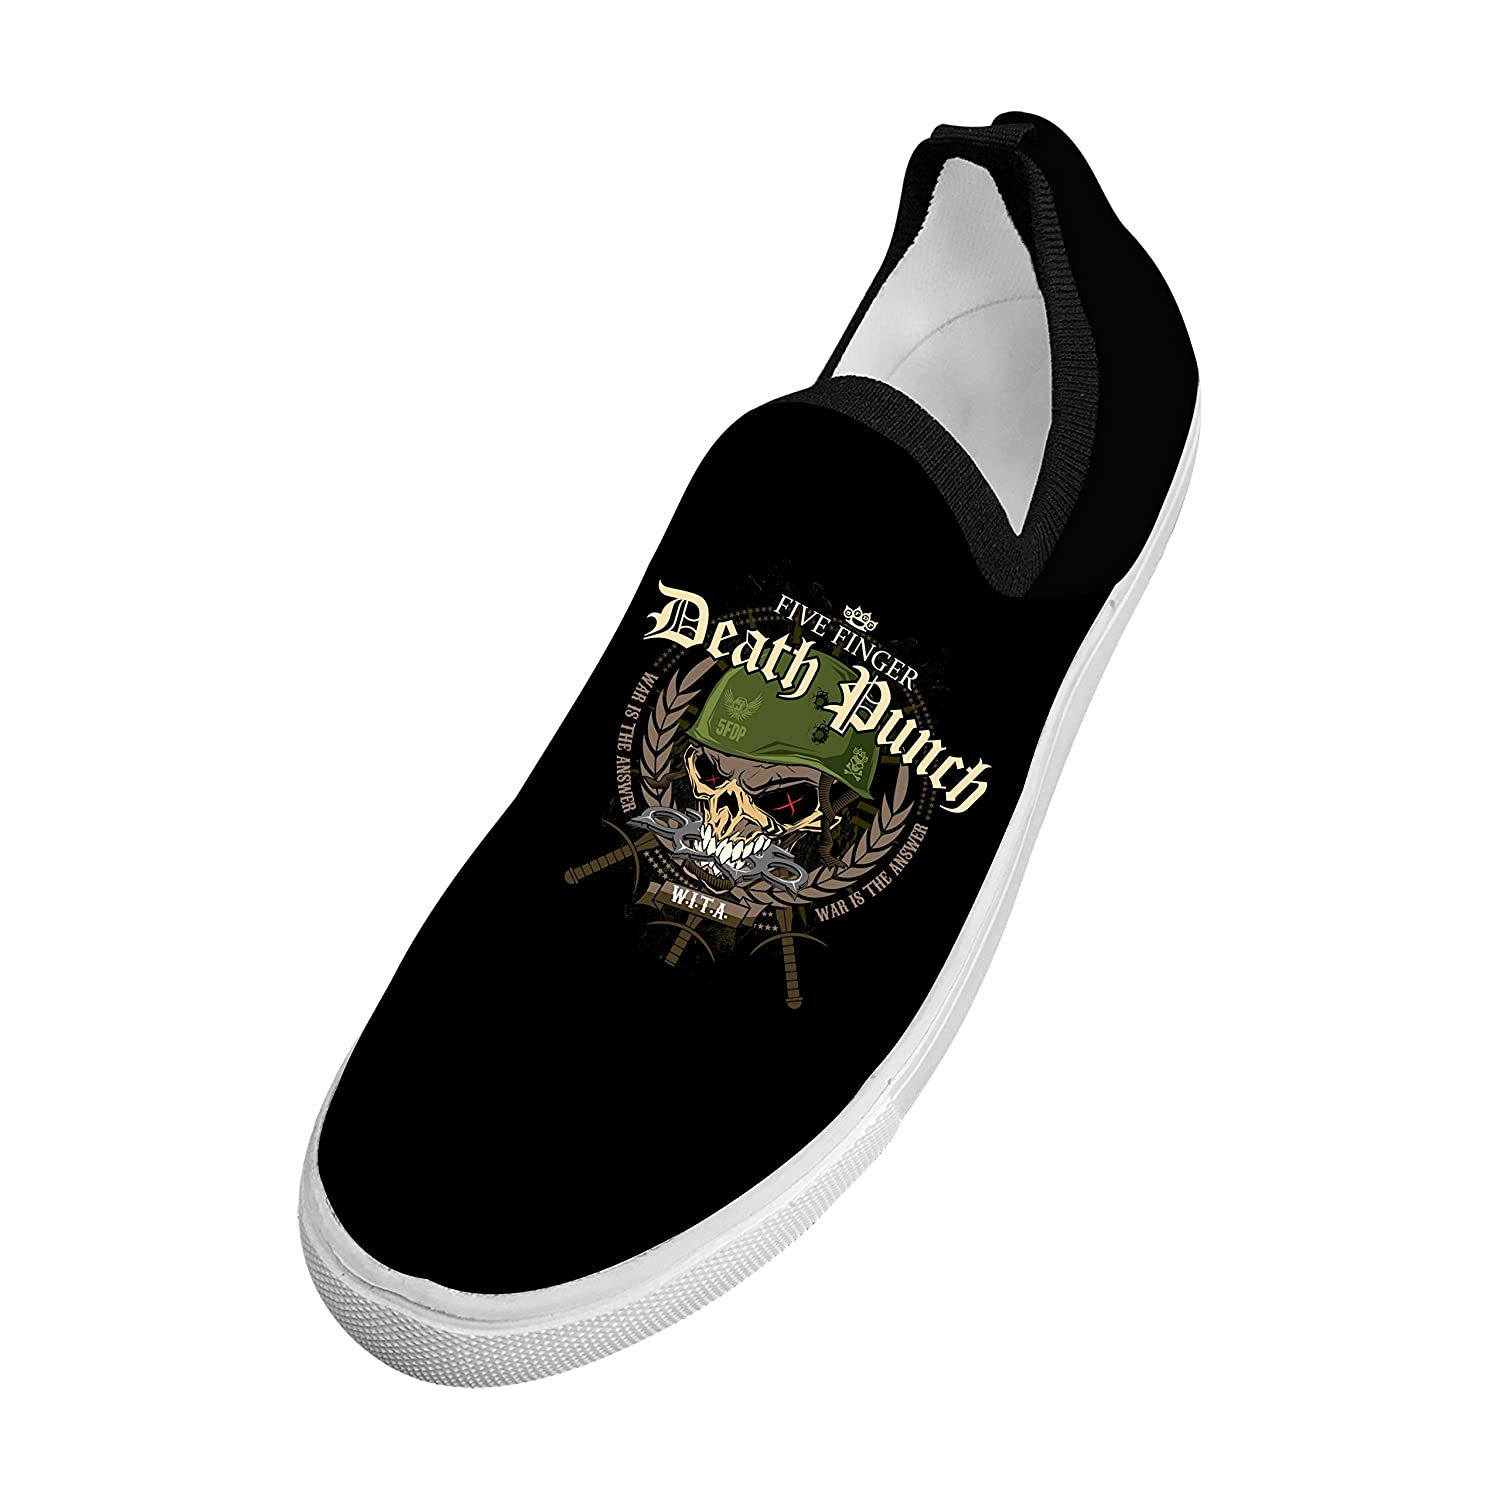 ed02972838 The Five Finger Death Punch Logo3D Personalized DIY   Funny